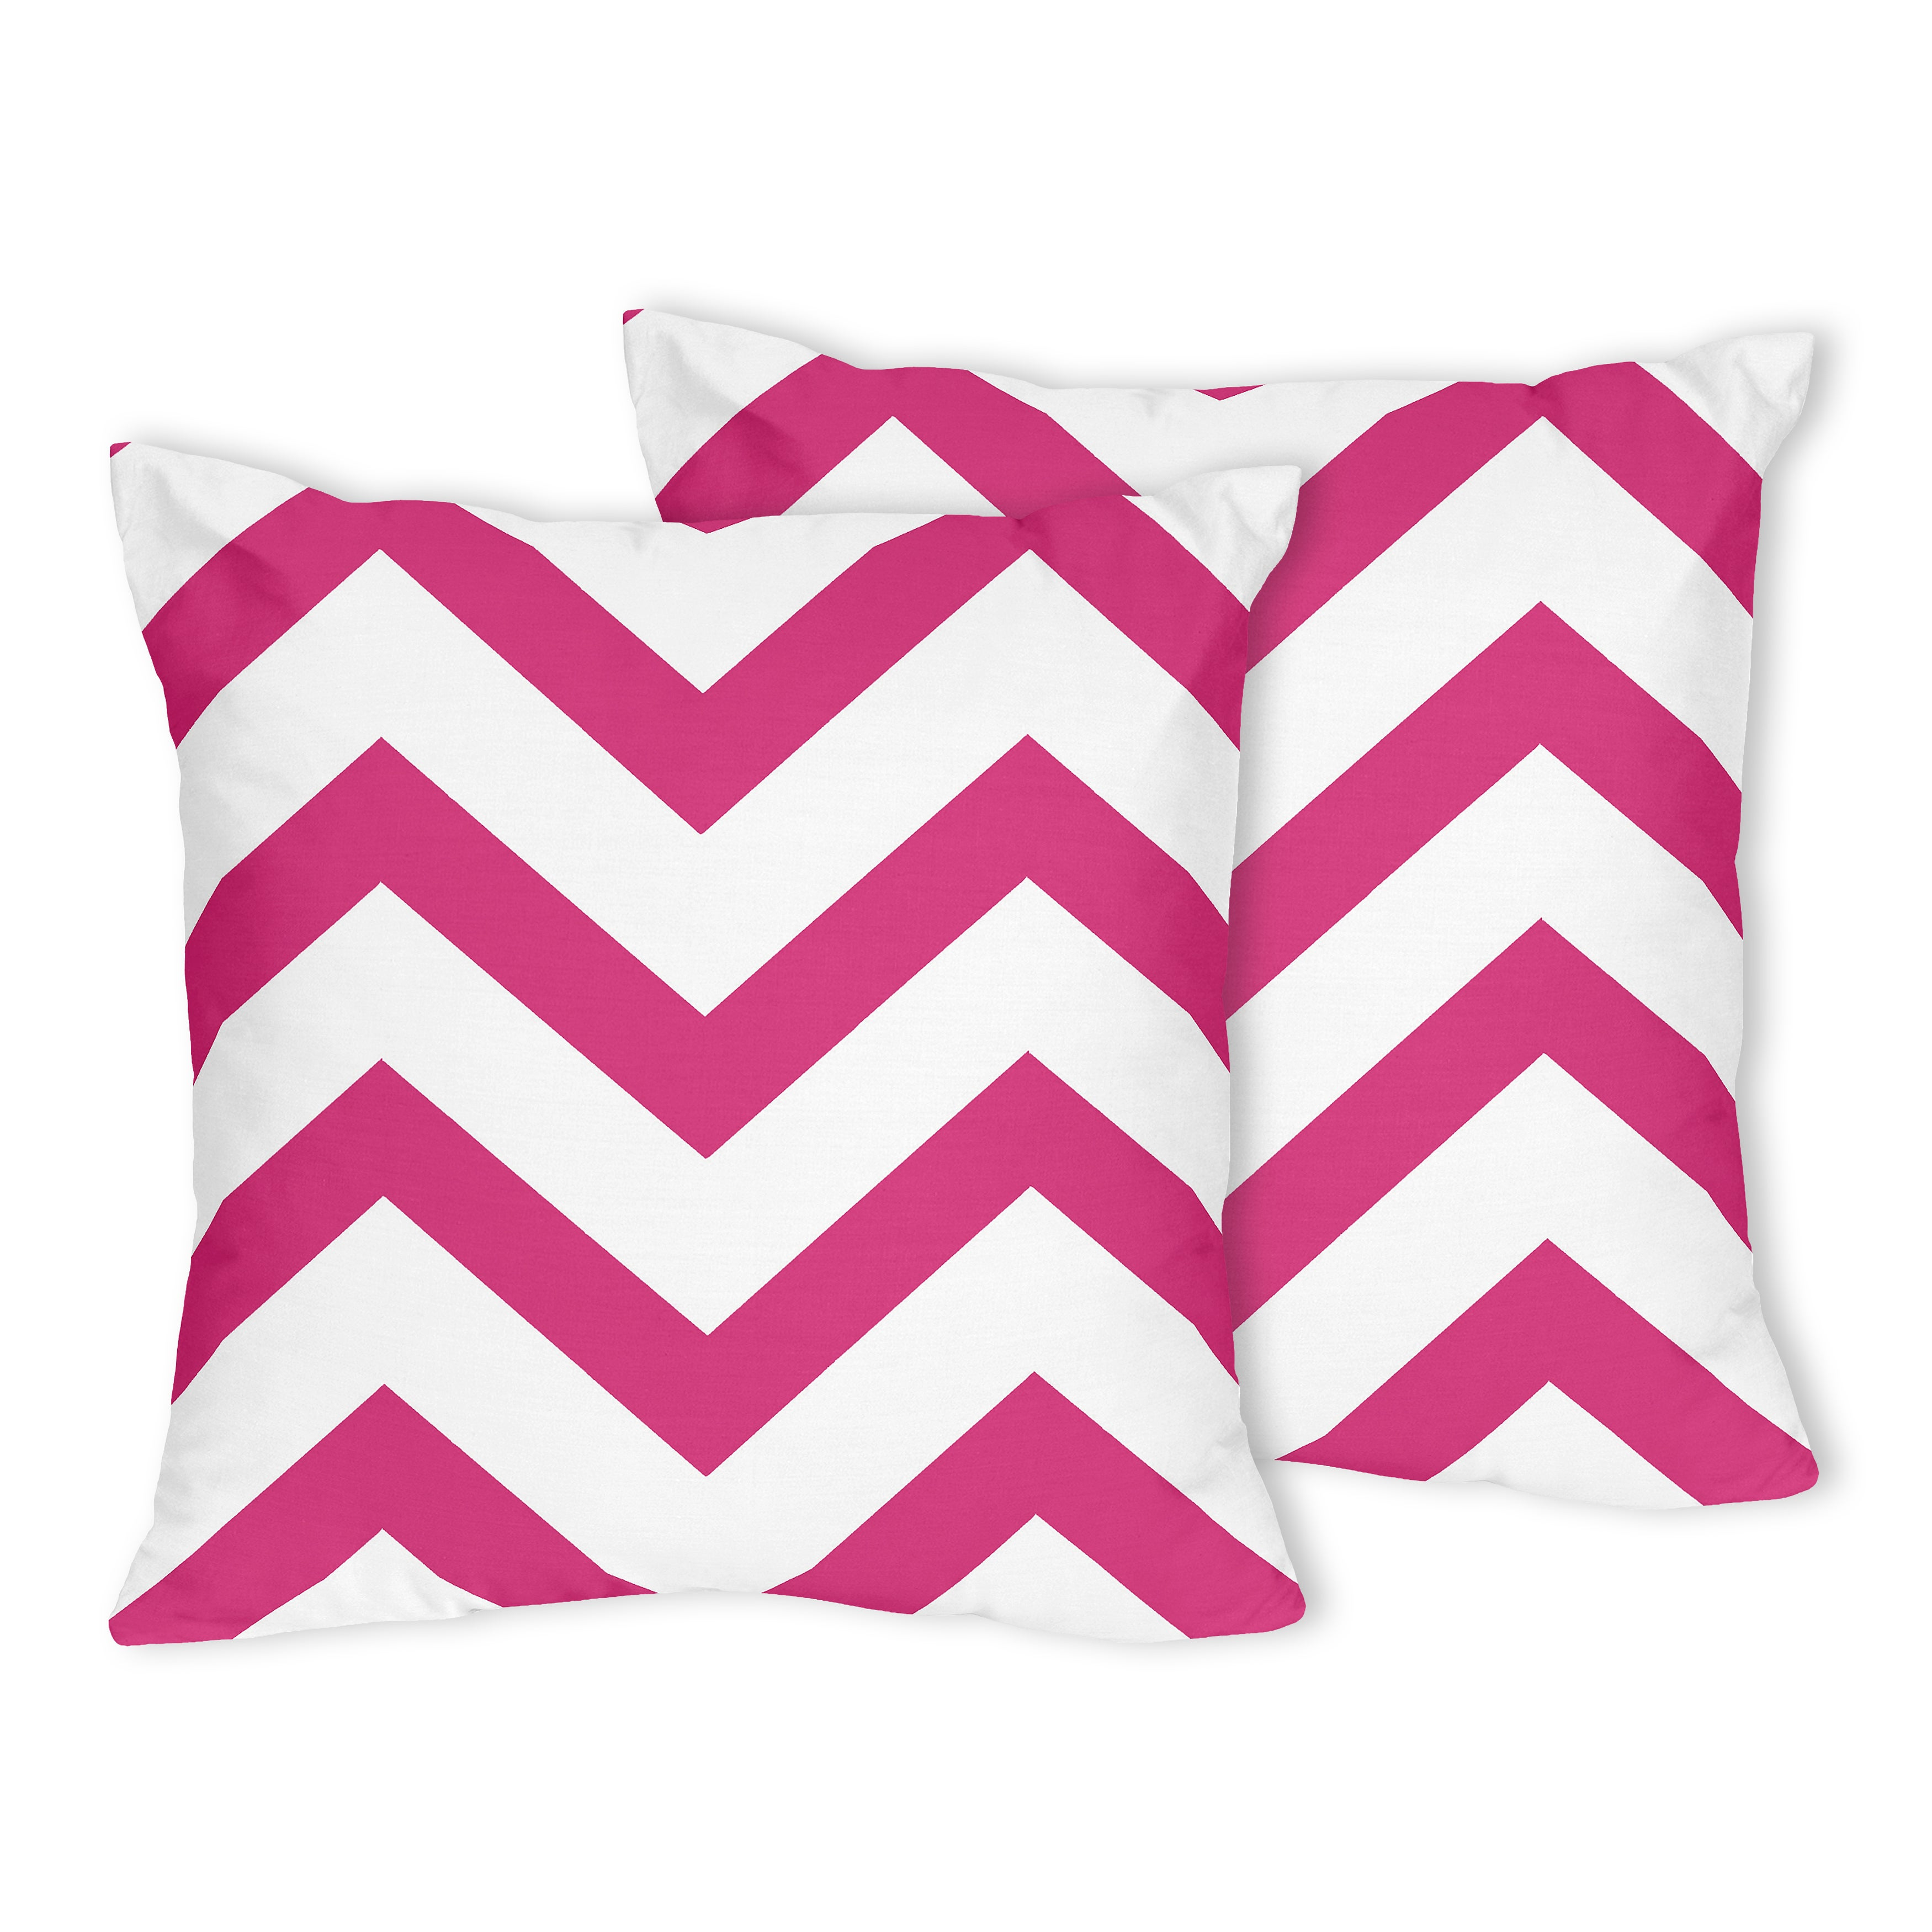 Hot pink bed throw